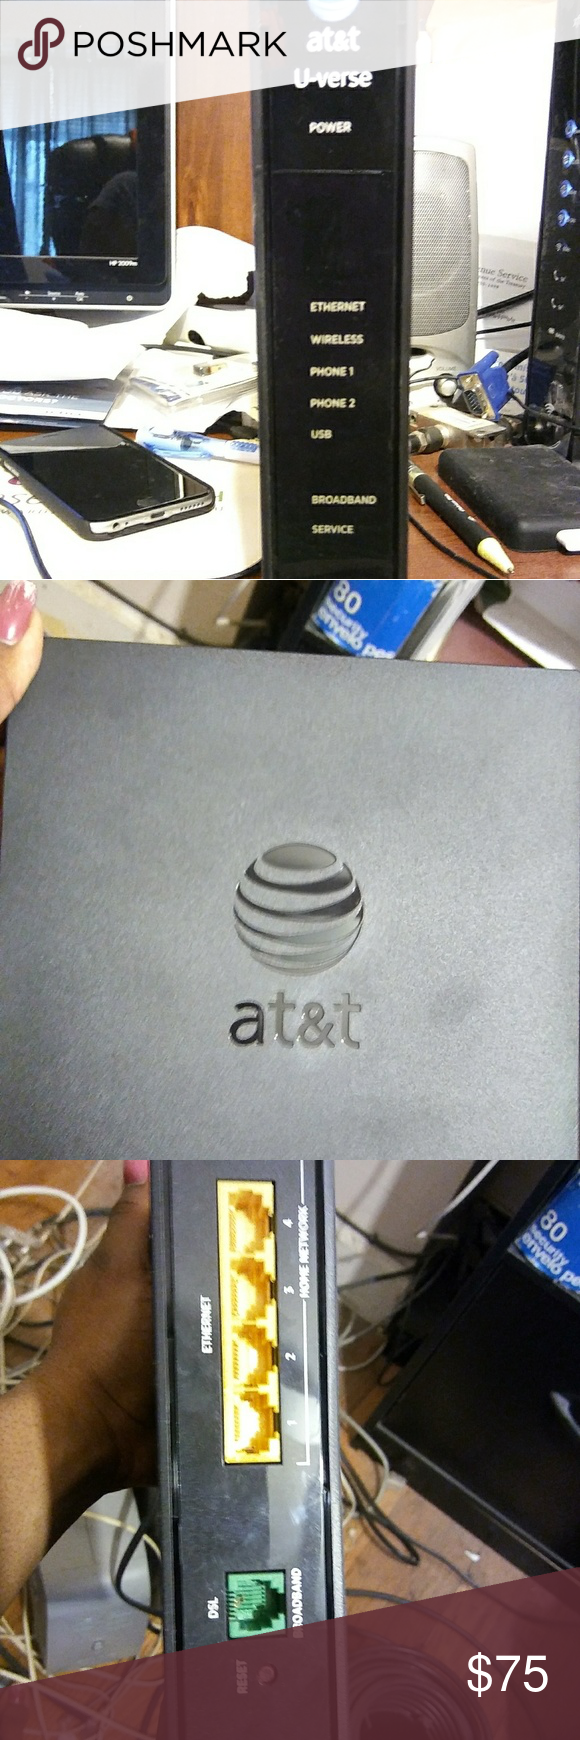 AT&T UVERSE WIRELESS ROUTER AT&T UVERSE ROUTER NEW IN BOX